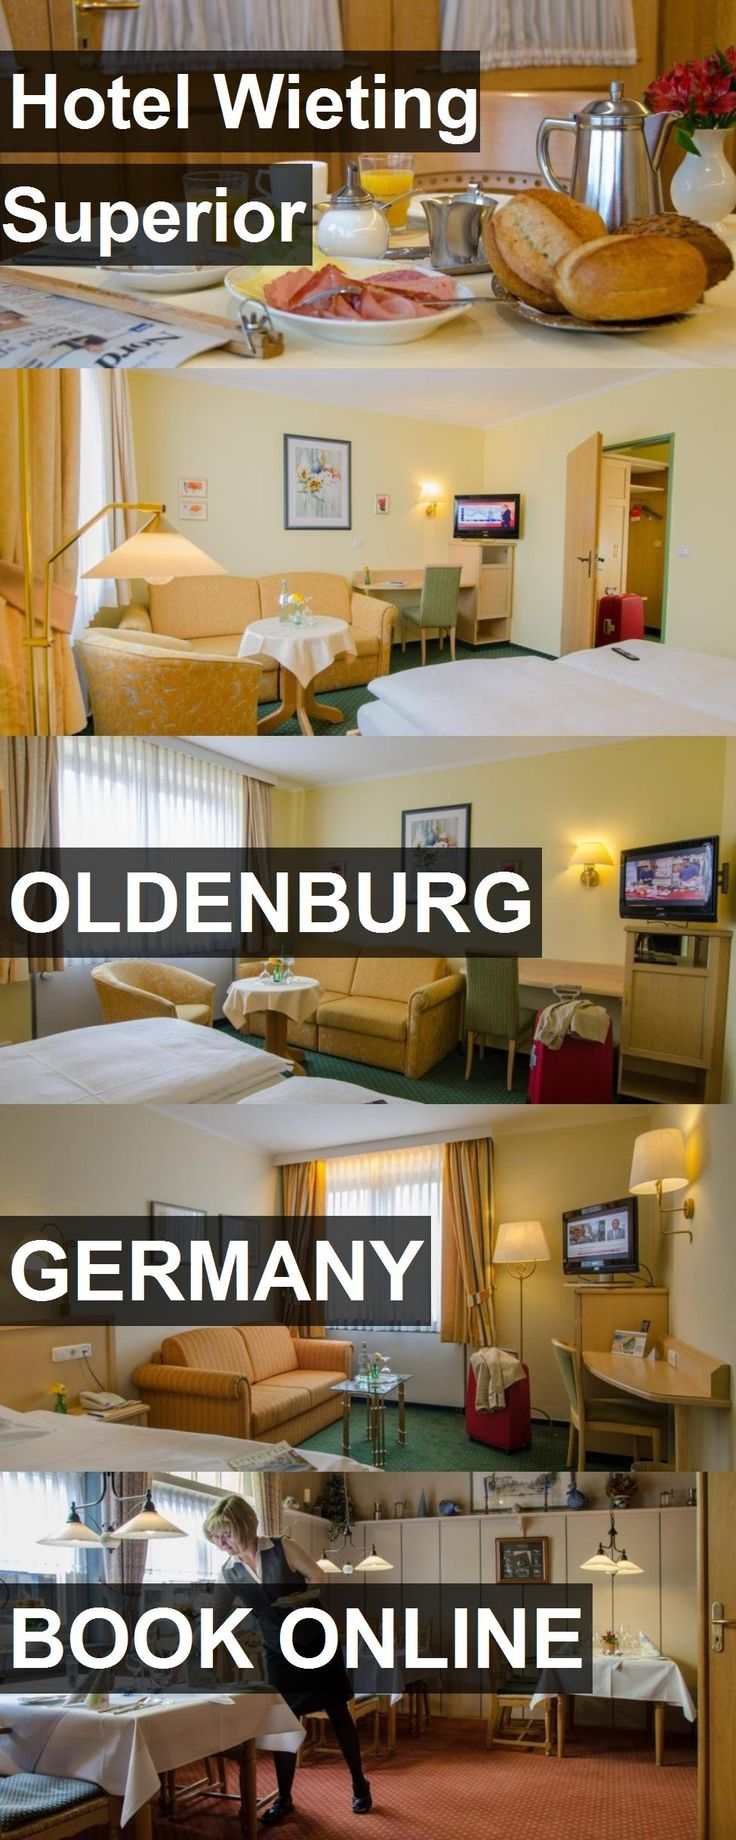 Hotel Wieting Superior in Oldenburg, Germany. For more information, photos, reviews and best prices please follow the link. #Germany #Oldenburg #travel #vacation #hotel